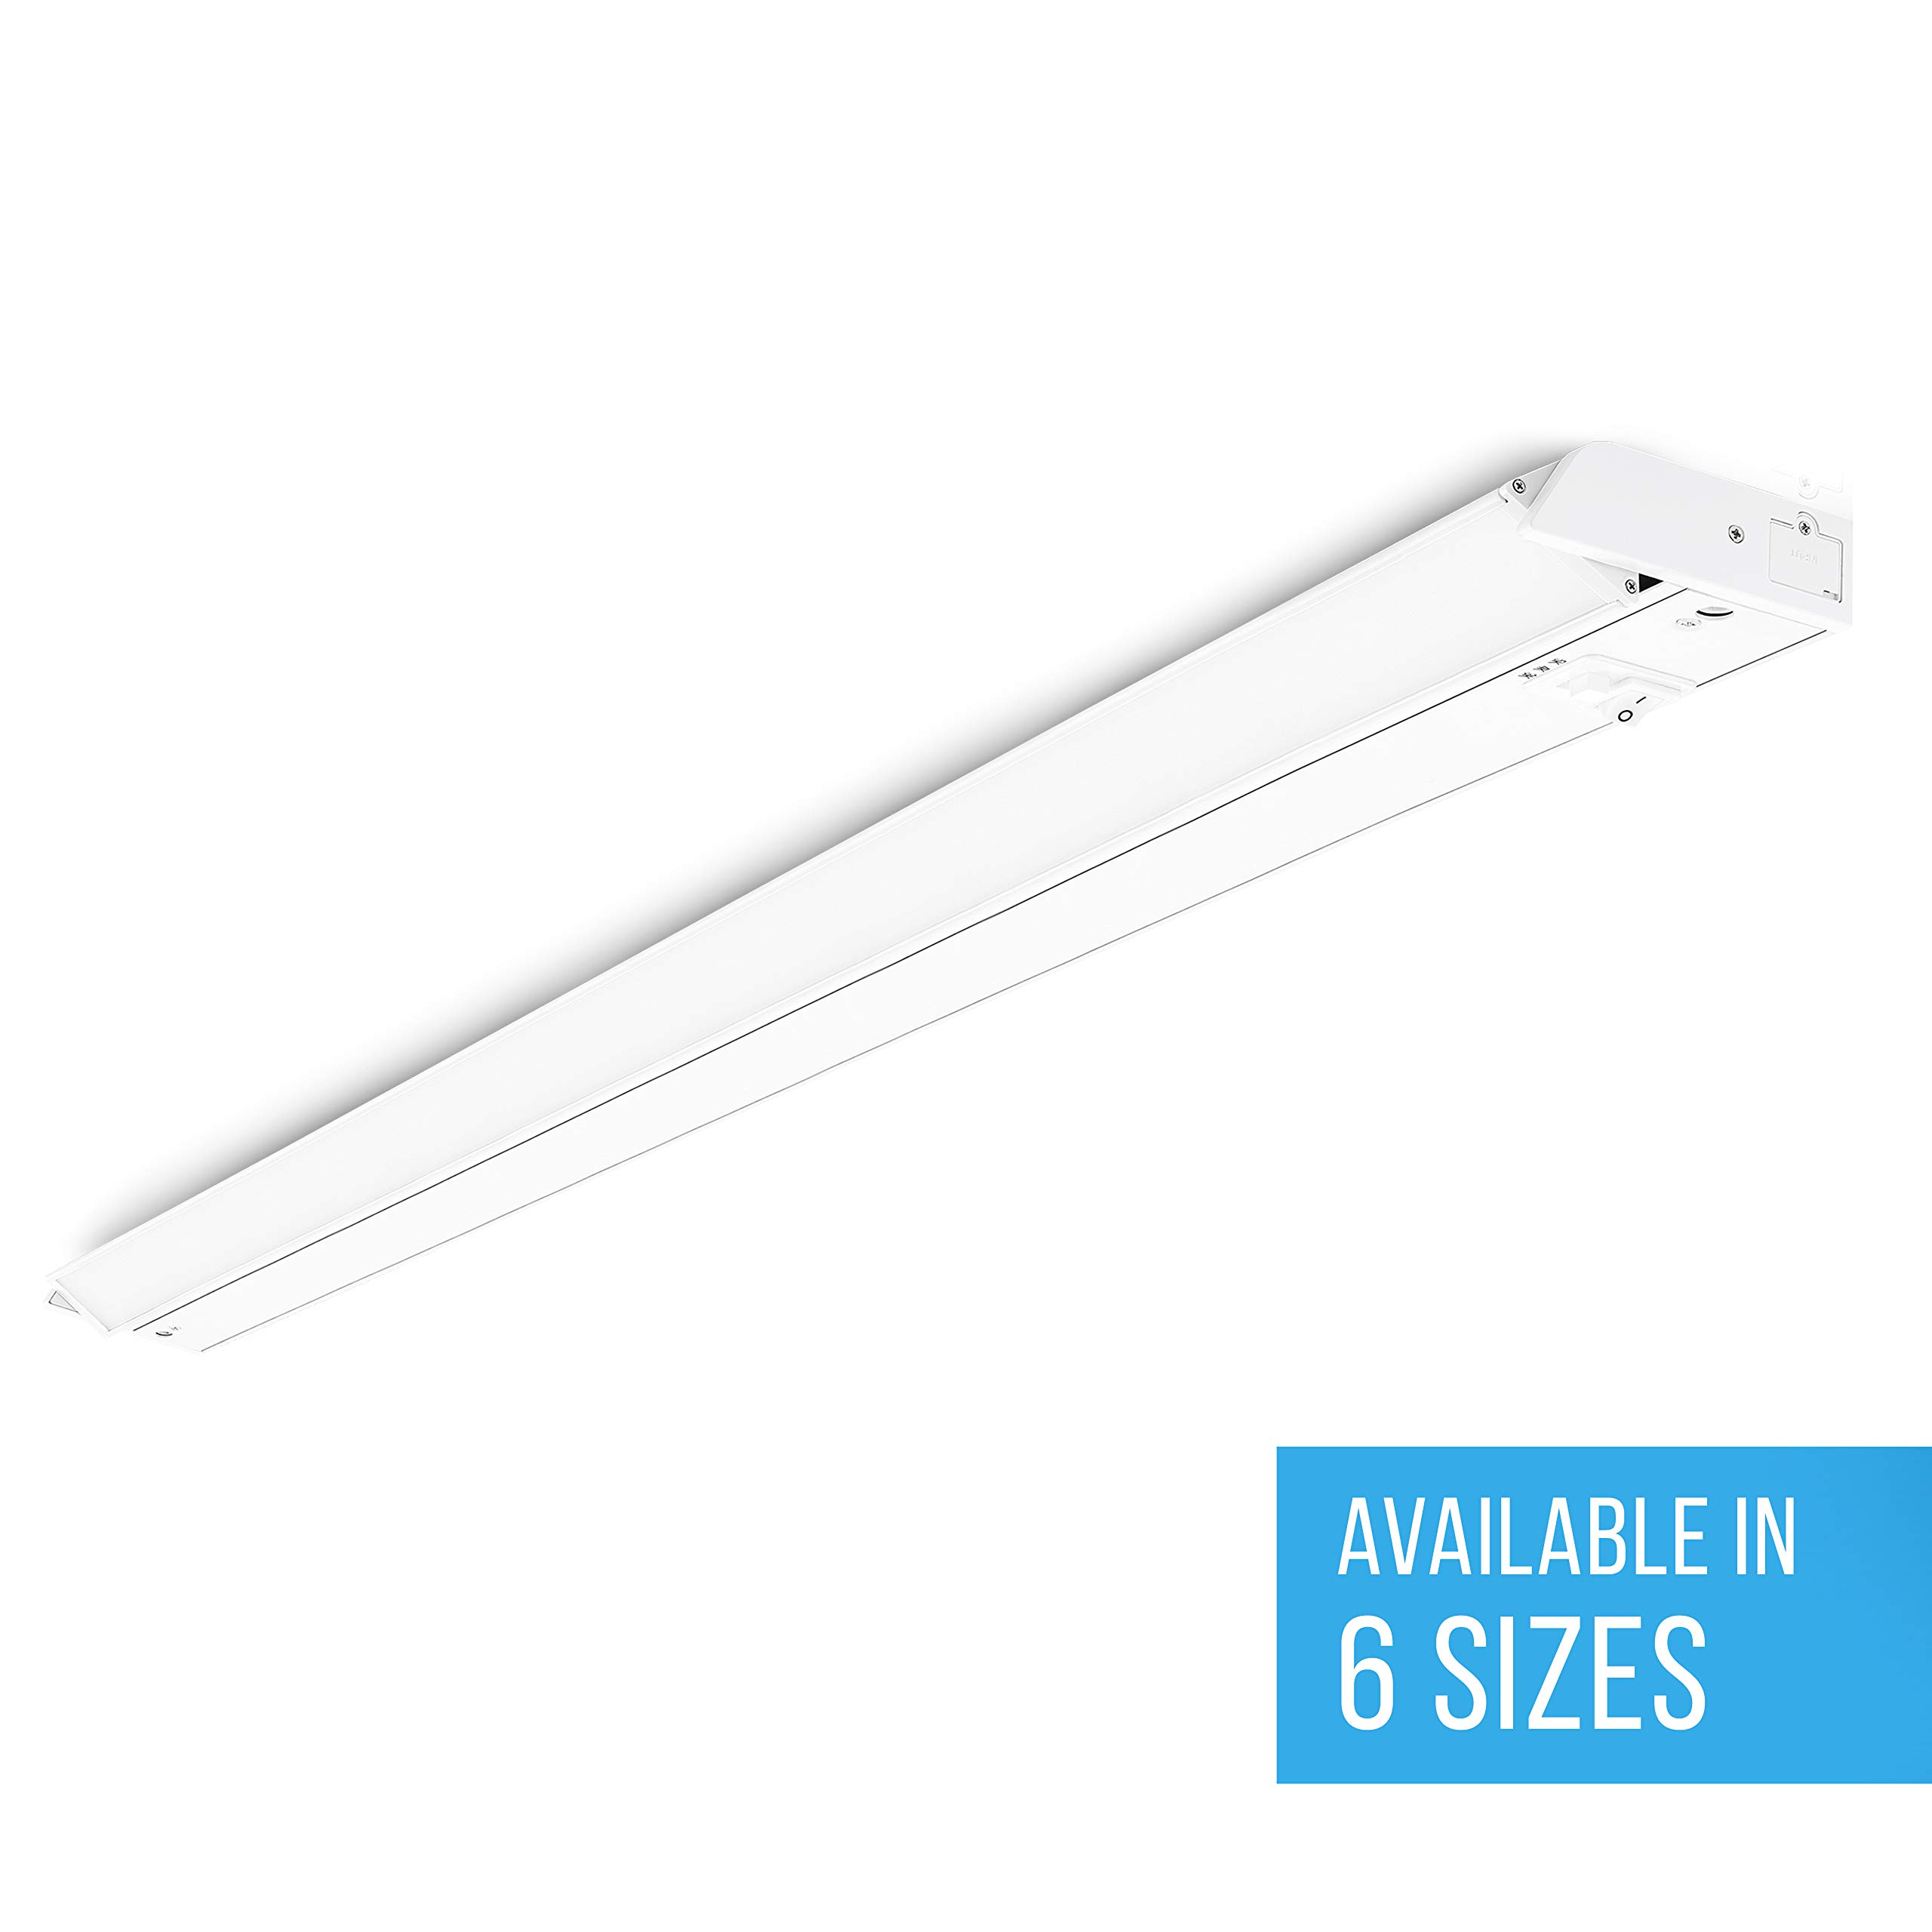 Parmida LED Swivel Under Cabinet Light (Adjustable Lens Angle), 42 Inch, 22W, 1320lm, Dimmable, Linkable, 3-in-1 Color Levels, Hardwire or Plug-in, On/Off Switch, ETL & ENERGY STAR, 120V by Parmida LED Technologies